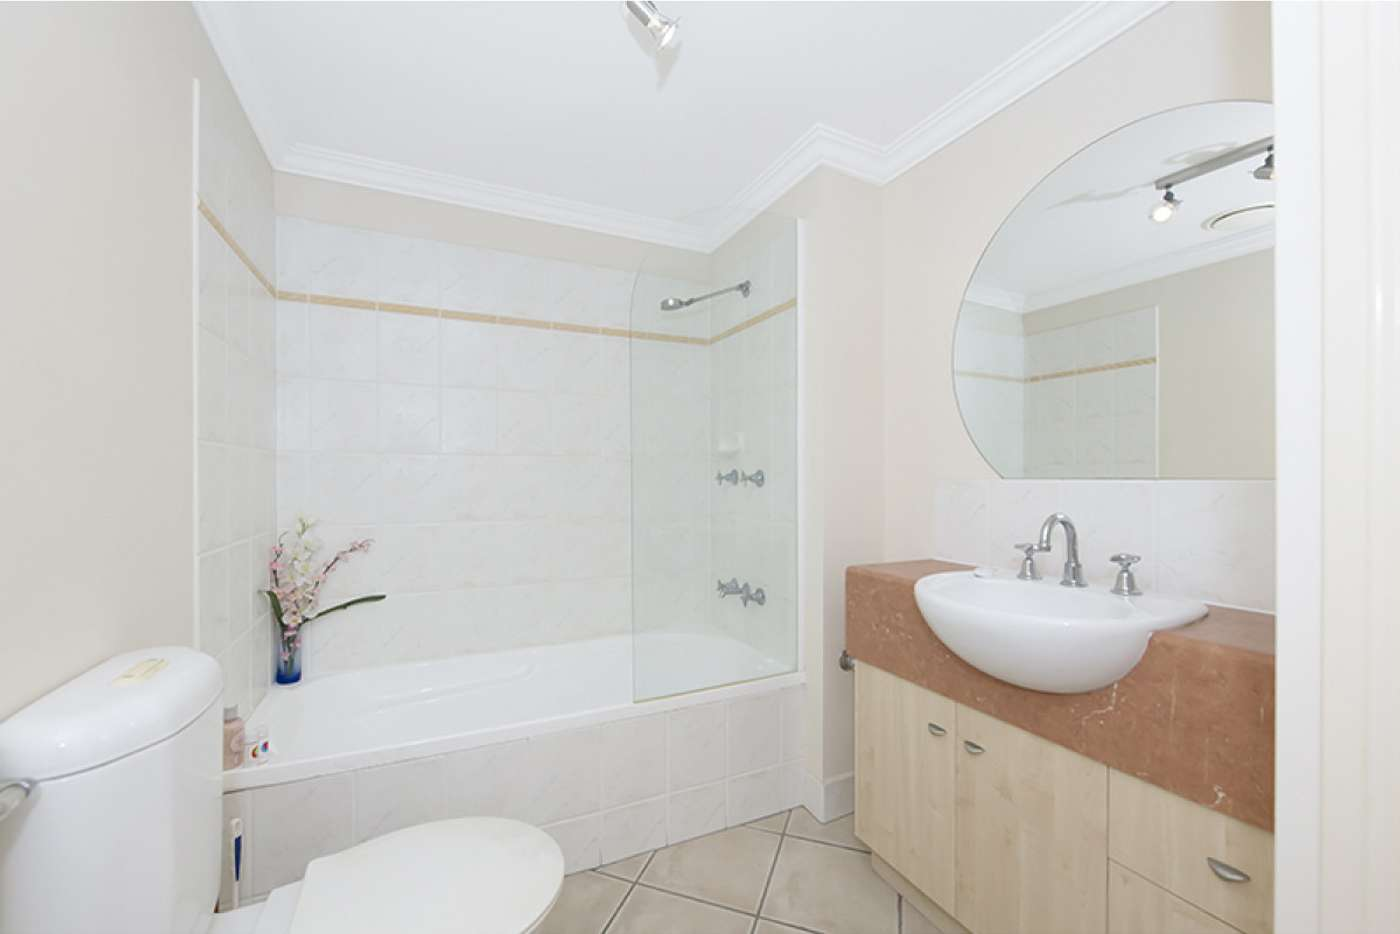 Seventh view of Homely apartment listing, 16/18 The Strand, North Ward QLD 4810